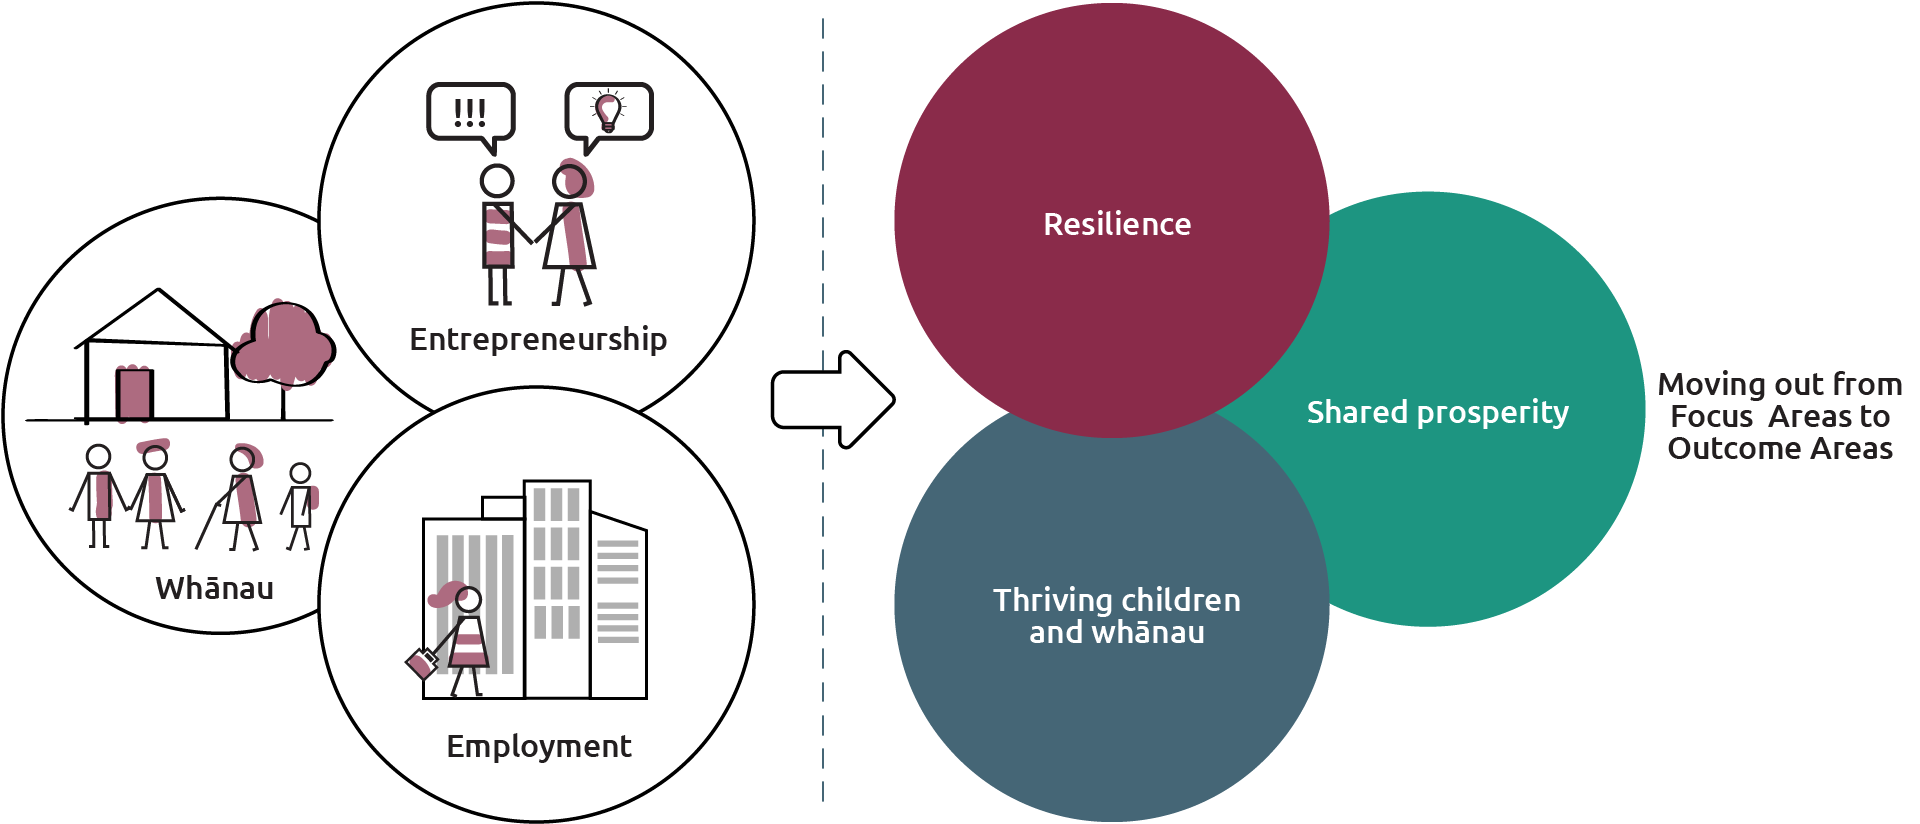 A diagram that illustrates how The Southern Initiative moves from focus areas to outcome areas. Whanau, Employment and Entrepreneurship moving to shared prosperity, resilience and thriving children and whanau